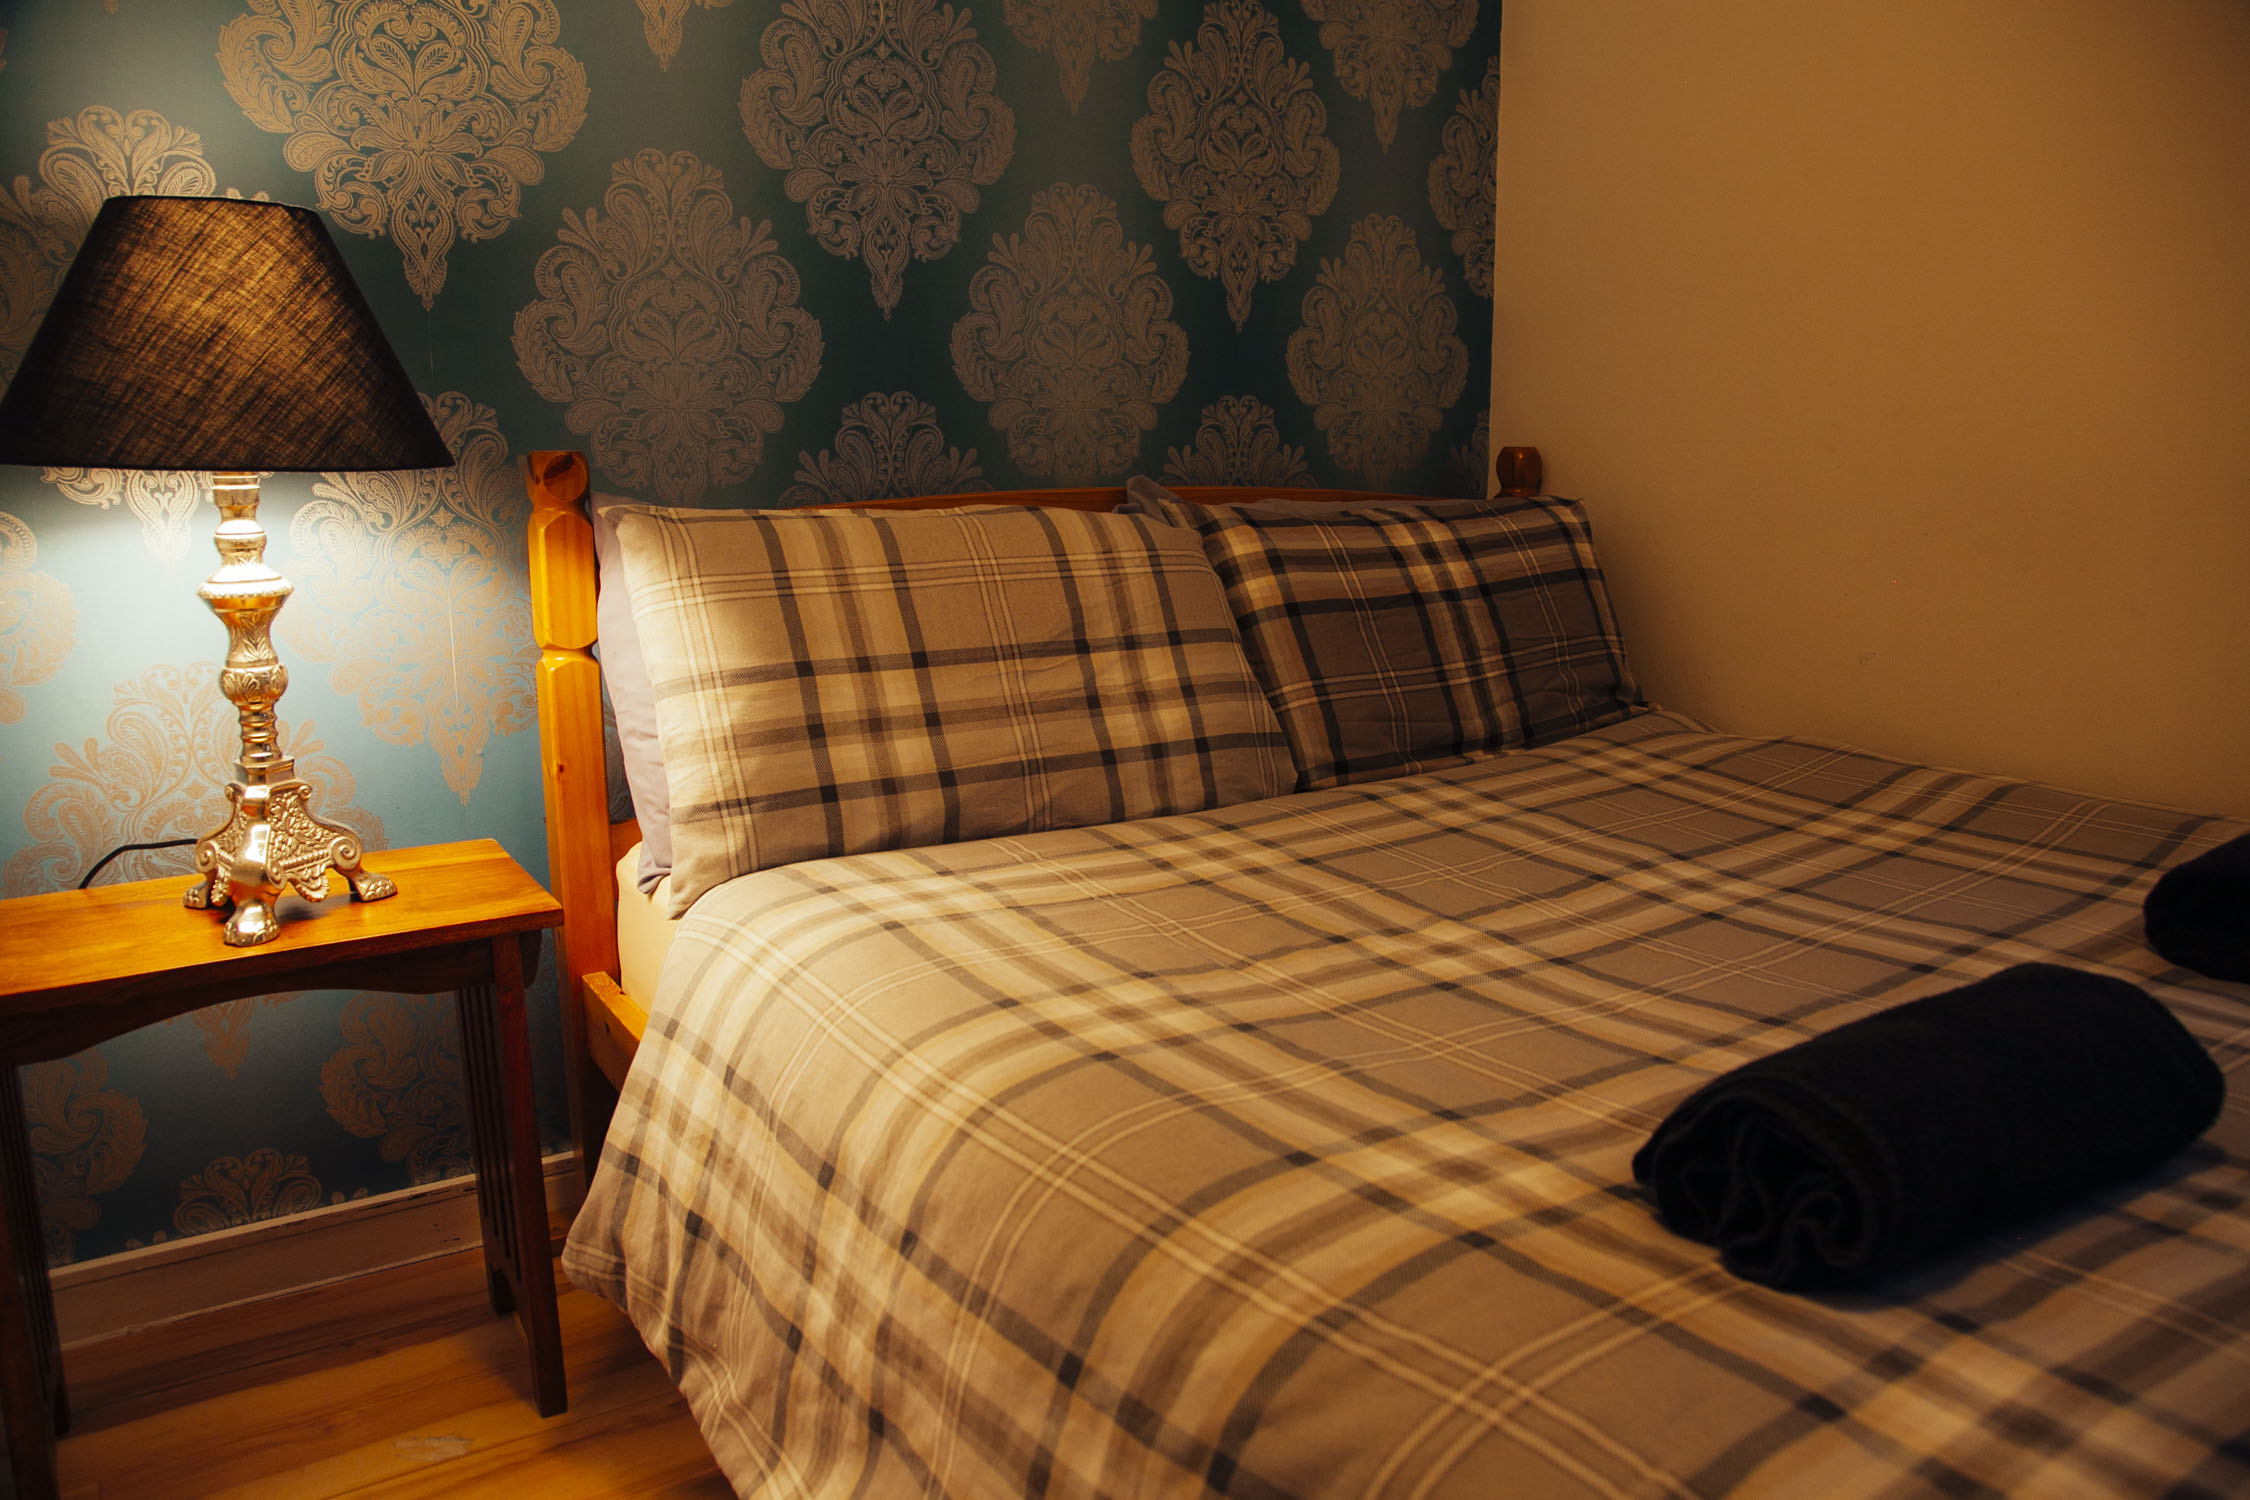 DOUBLE PRIVATE/ENSUITE - A double room with ensuite.